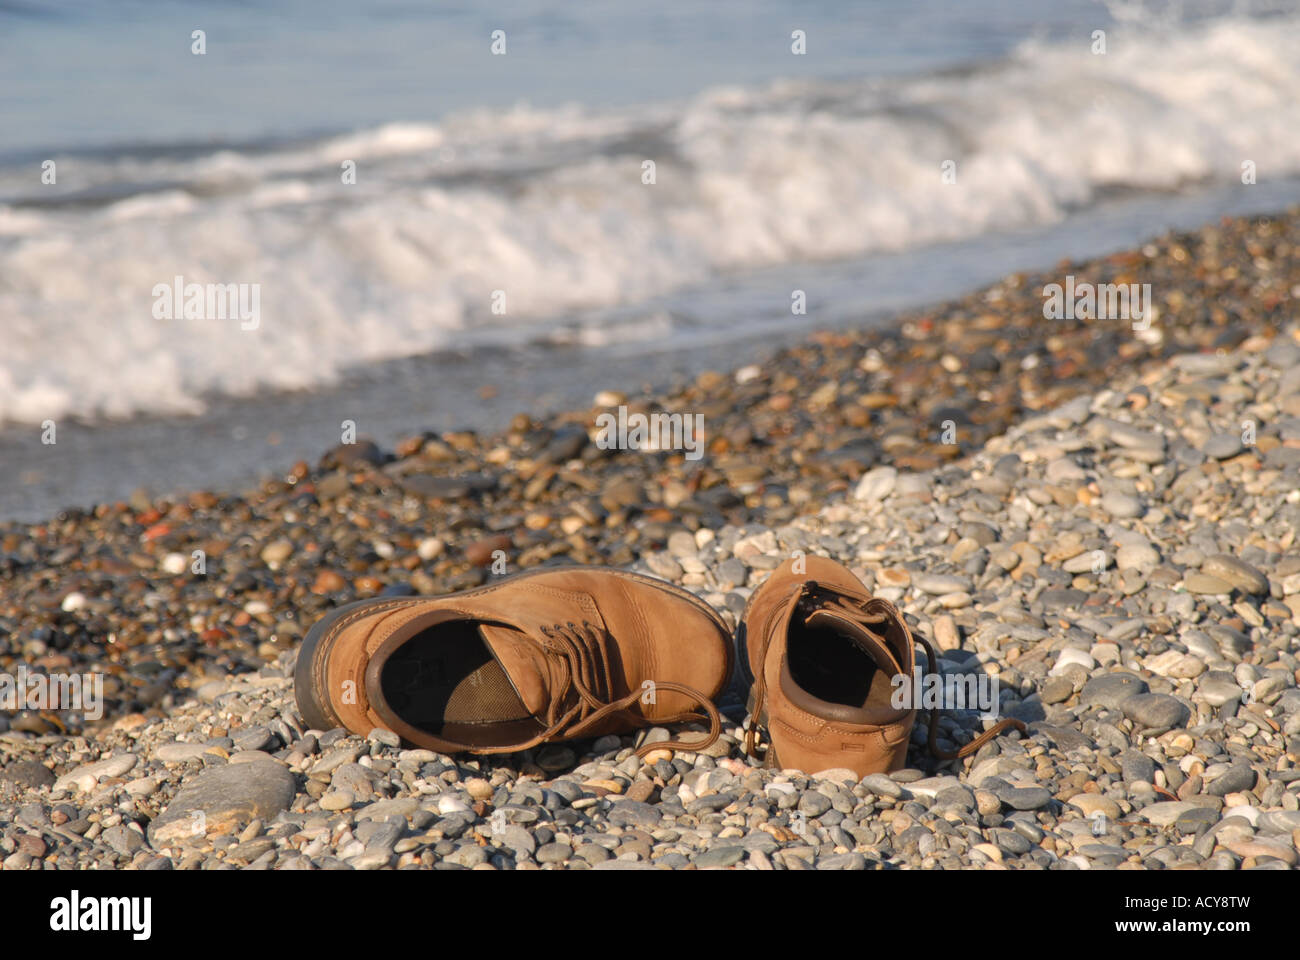 6b4aa69d6fc1 CRETE A pair of shoes on the beach at Maleme near Hania Stock Photo ...